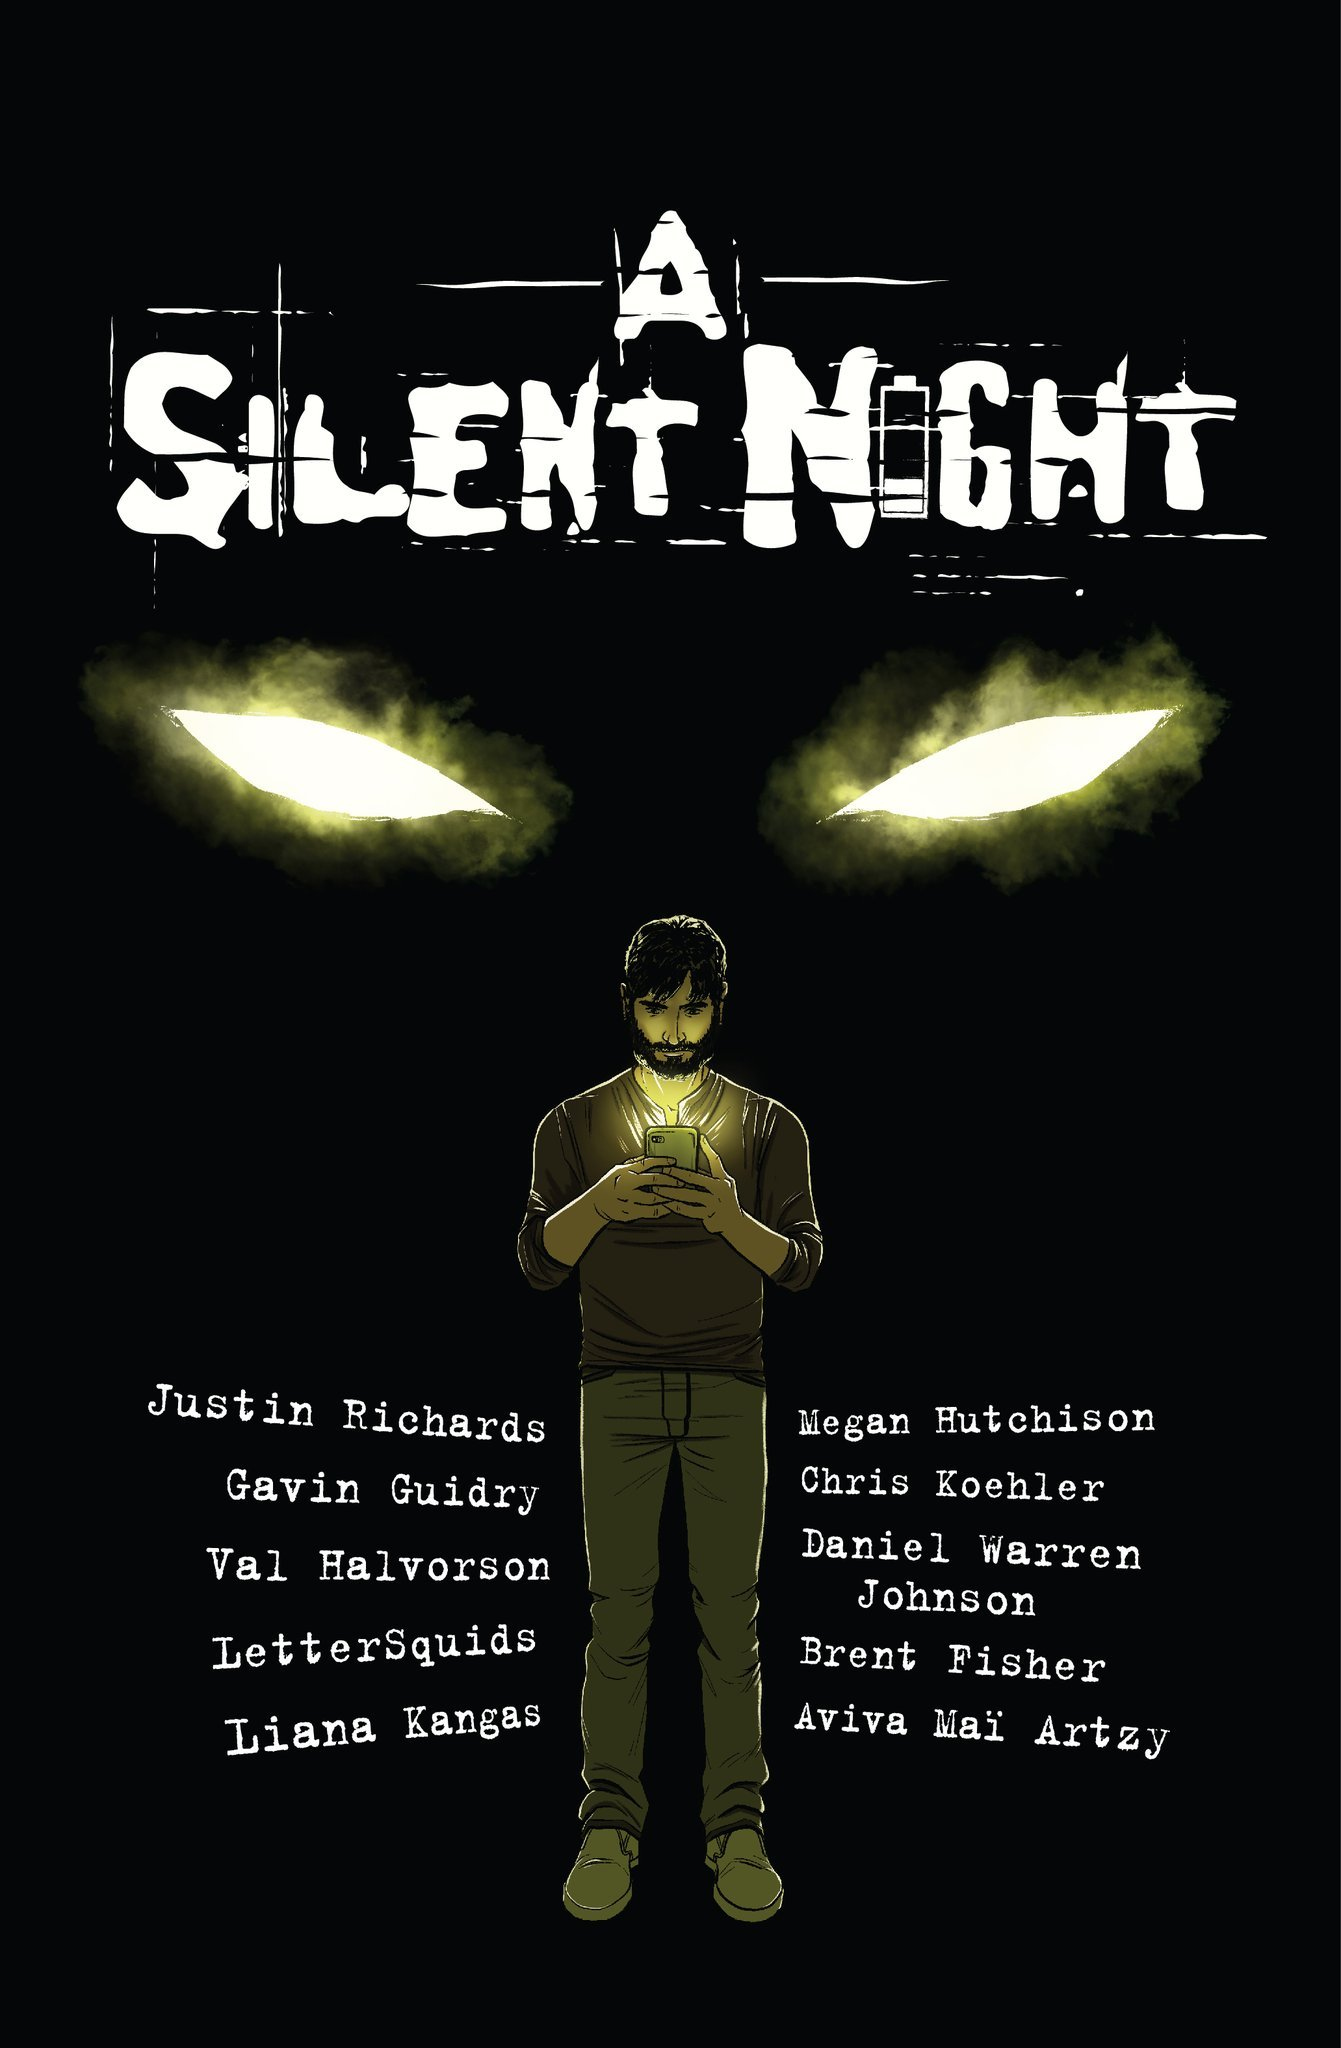 Comic Book Cover - A Silent Night